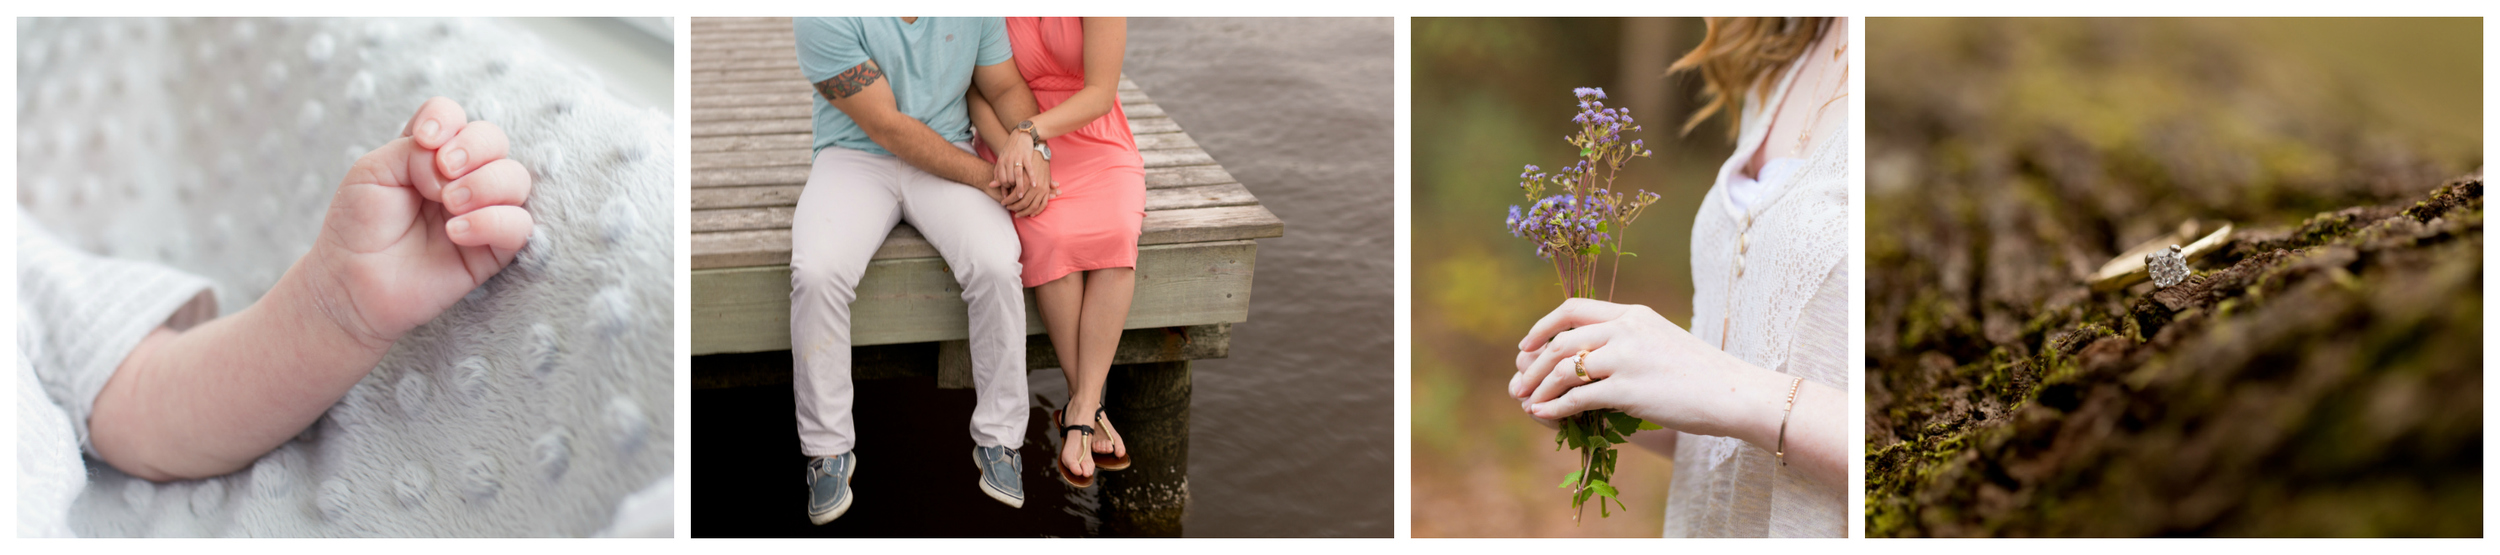 portrait details shots (engagement and newborn lifestyle by Ocean Springs portrait photographer Uninvented Colors Photography)